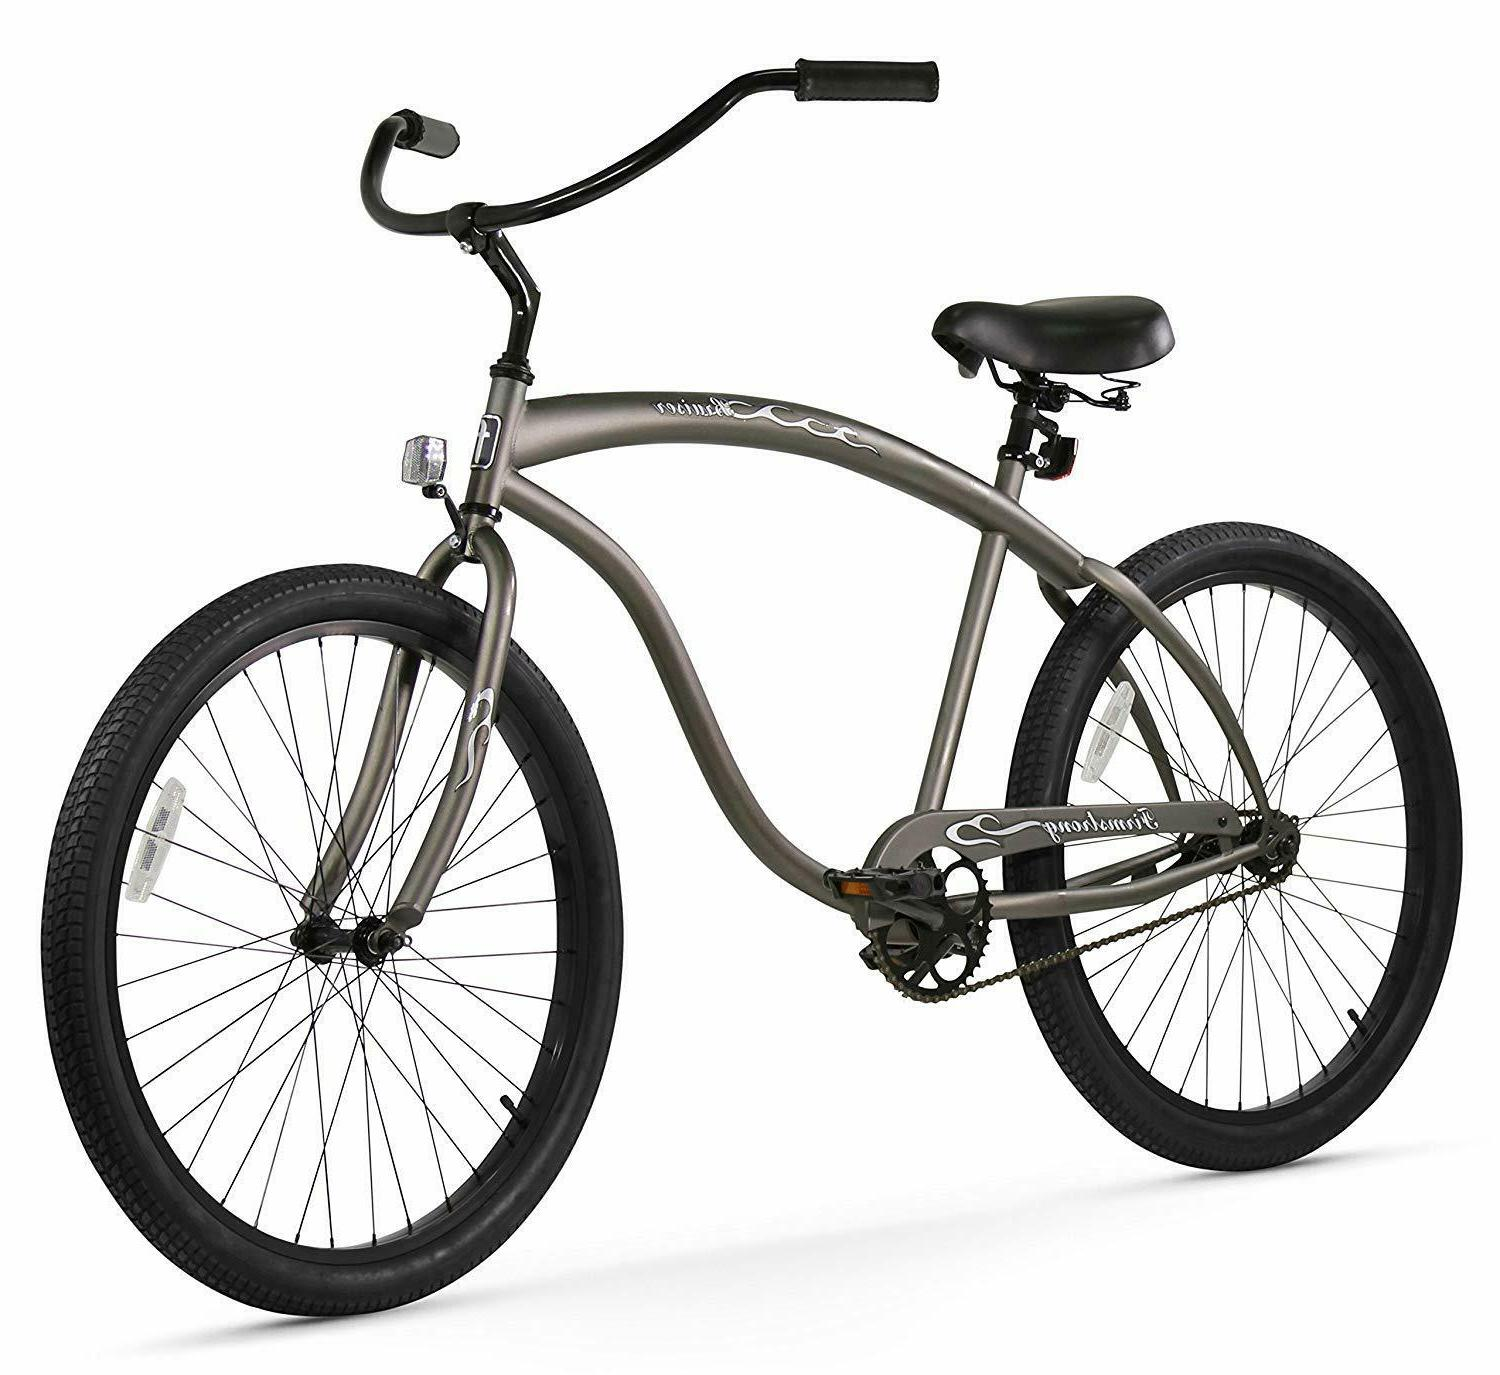 Firmstrong Bruiser Man Speed Cruiser Bicycle, 26-Inch, Black/Red